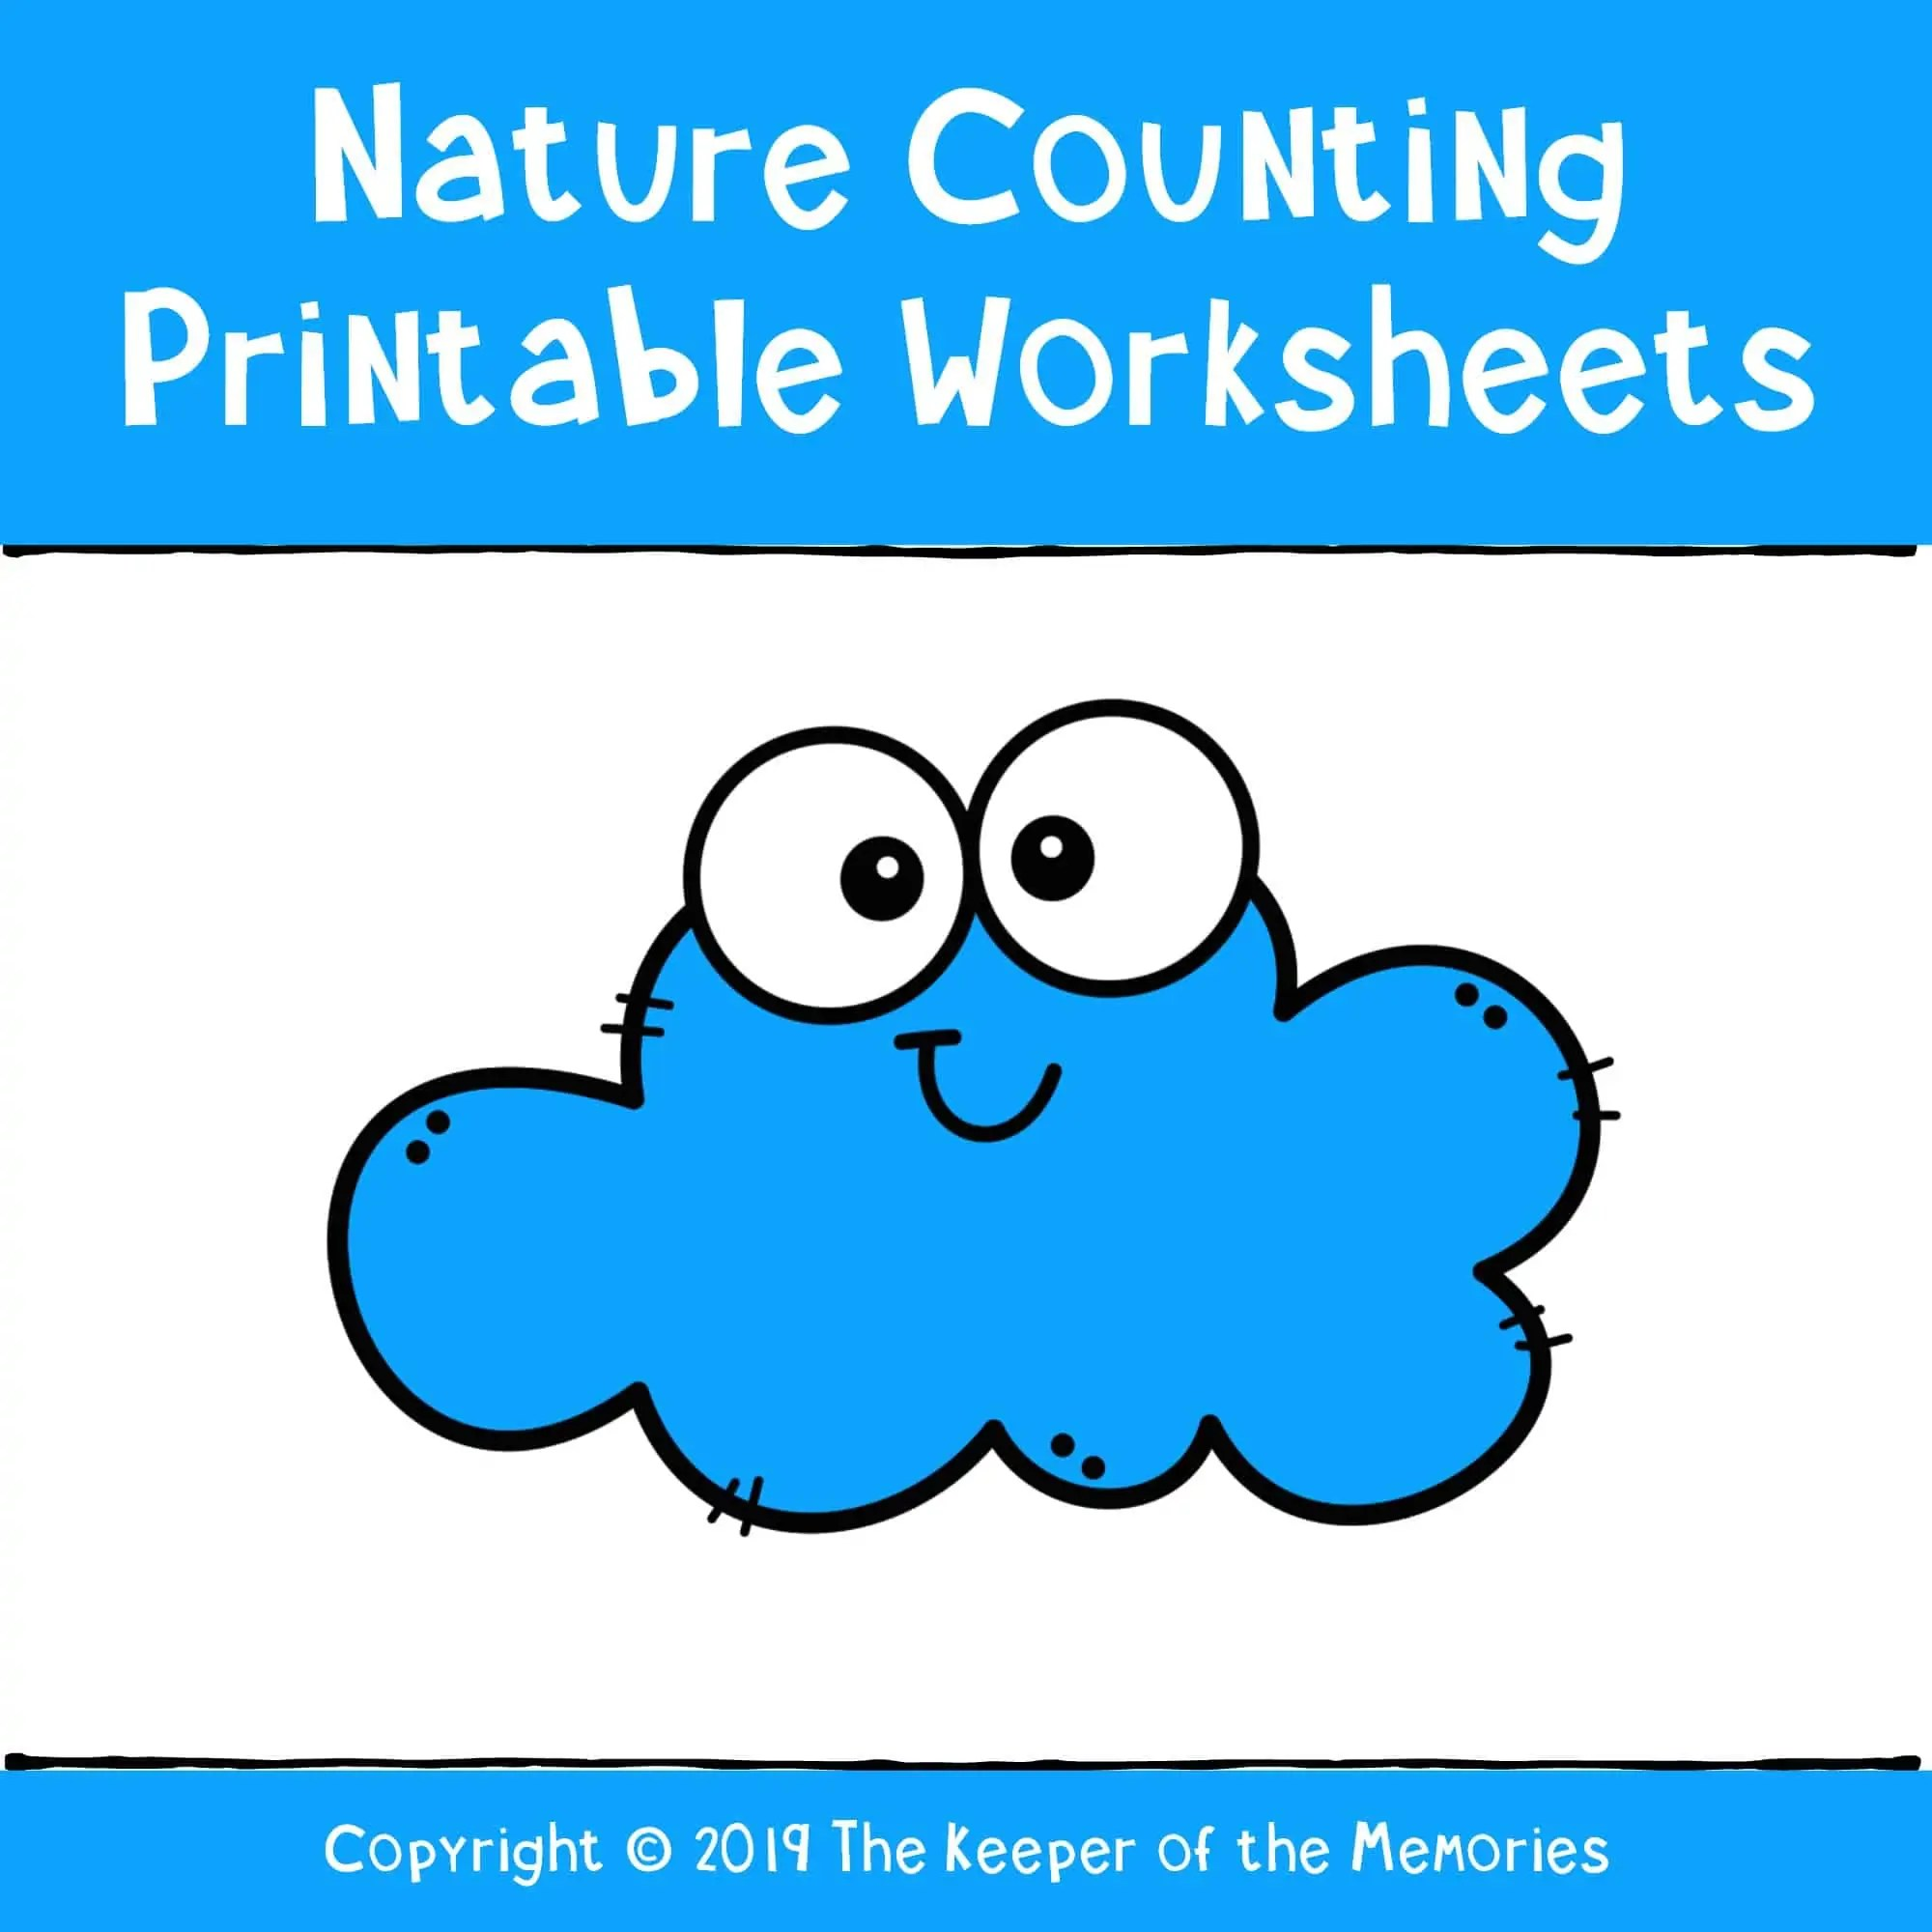 Nature Counting Printable Worksheets Cover